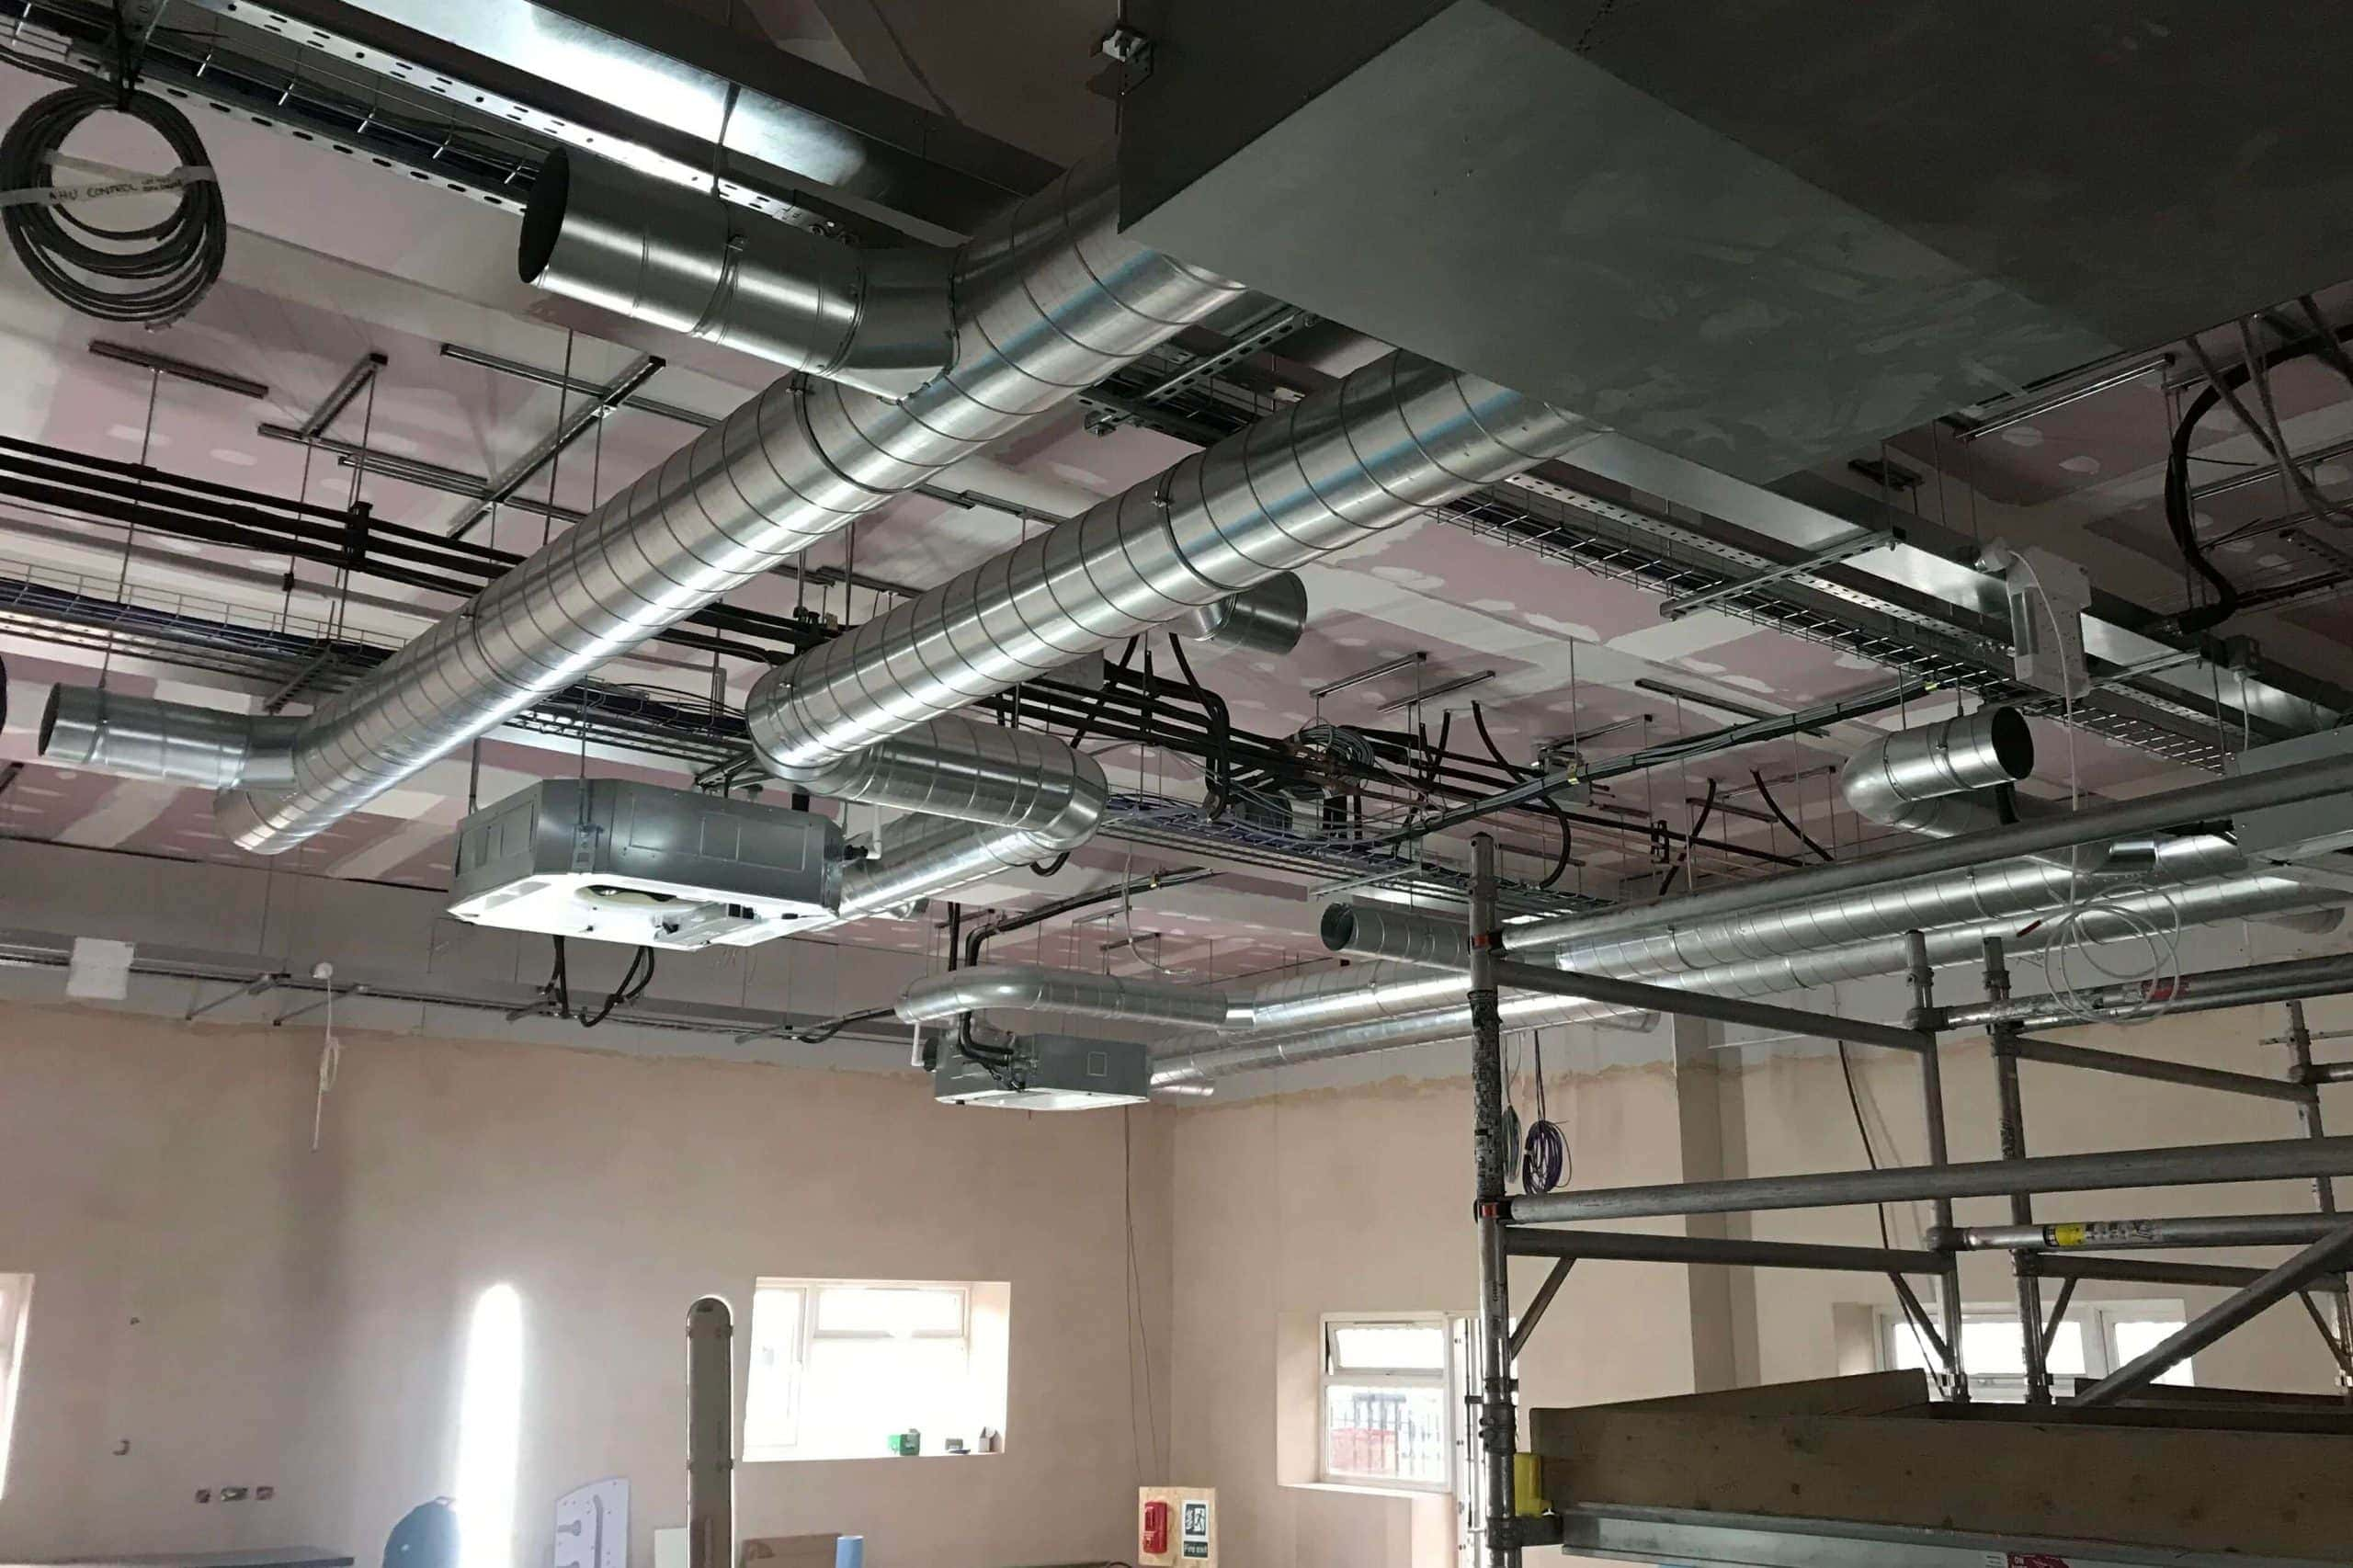 Norwood junction large commercial air conditioning solution by SubCool FM hanging unit amongst pipes in ceiling building view